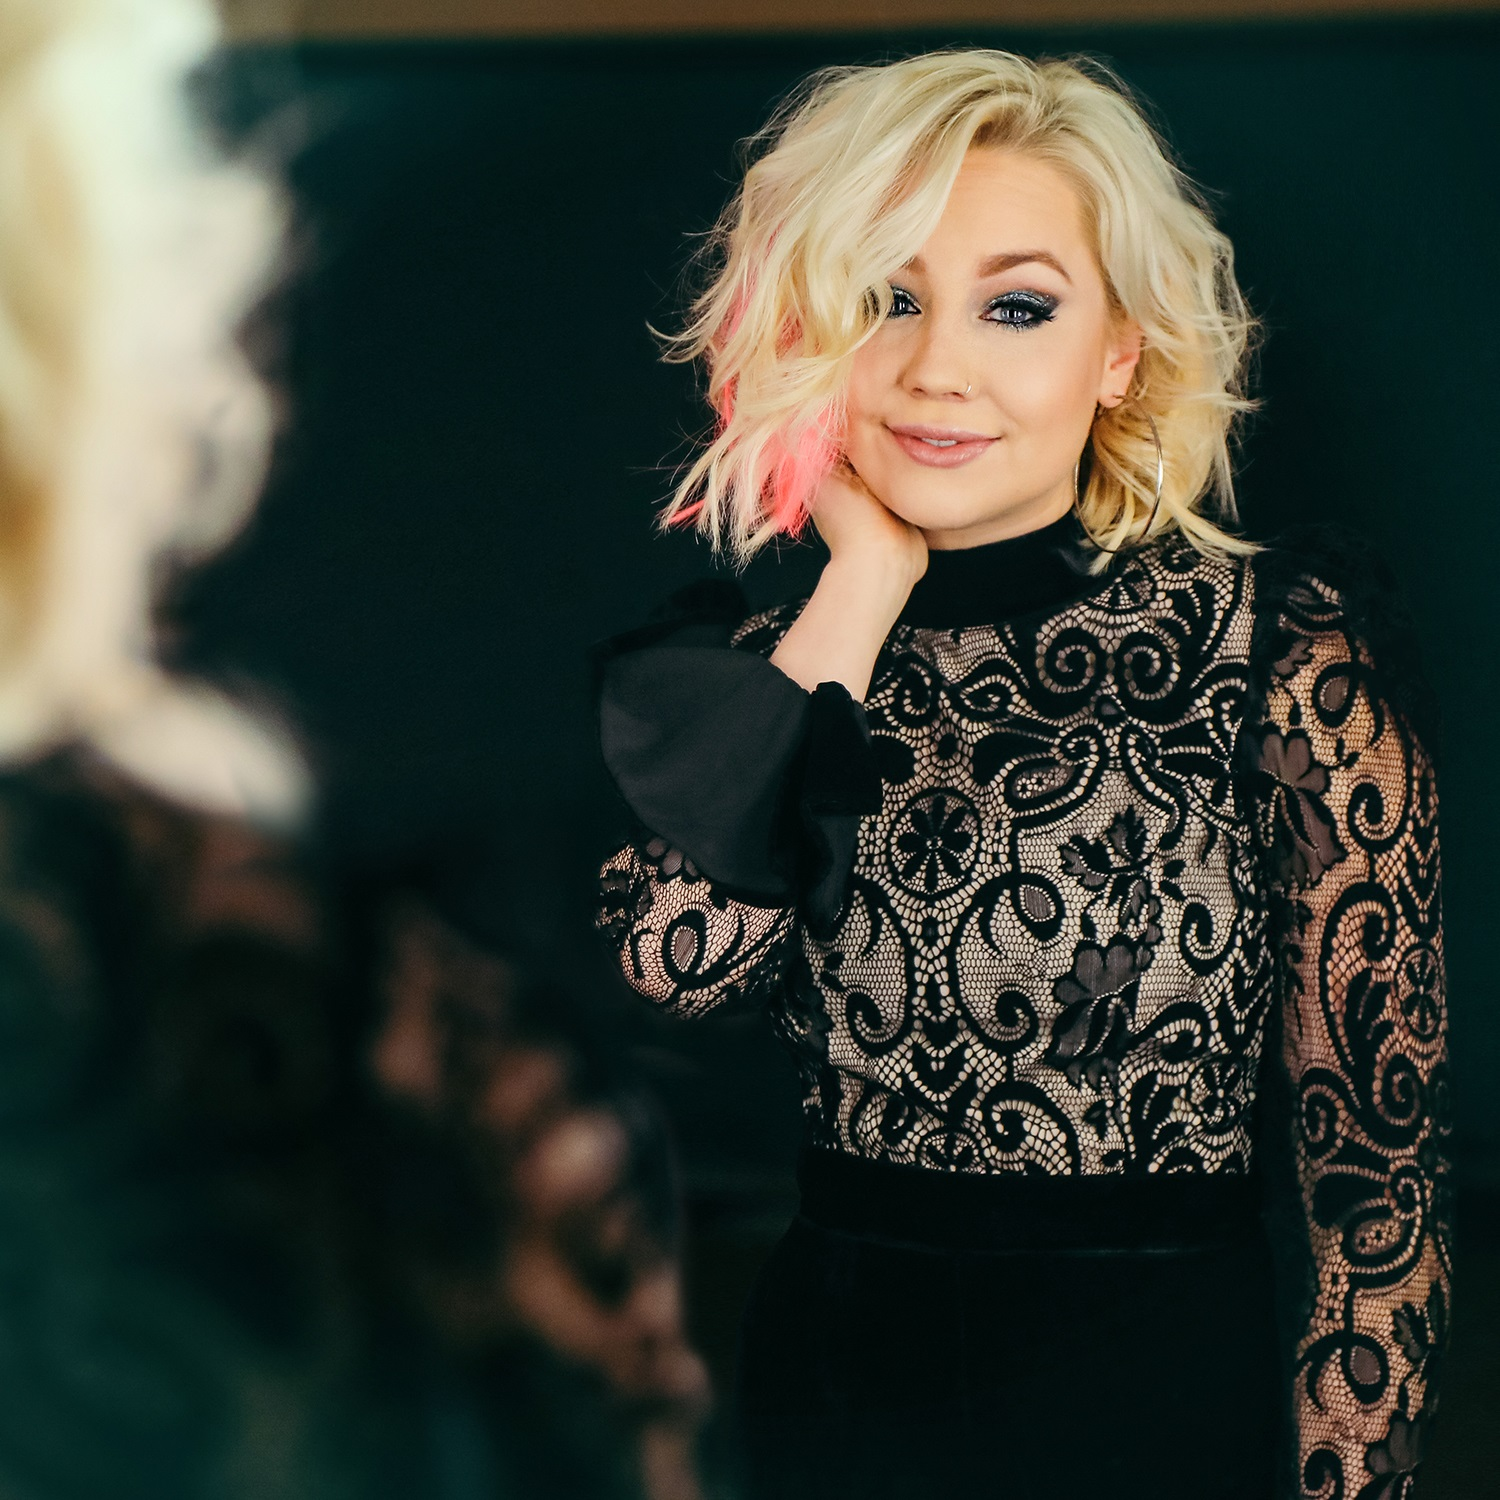 Texas Native RaeLynn on Hurricane Harvey Aftermath: 'It's Extremely Heartbreaking'